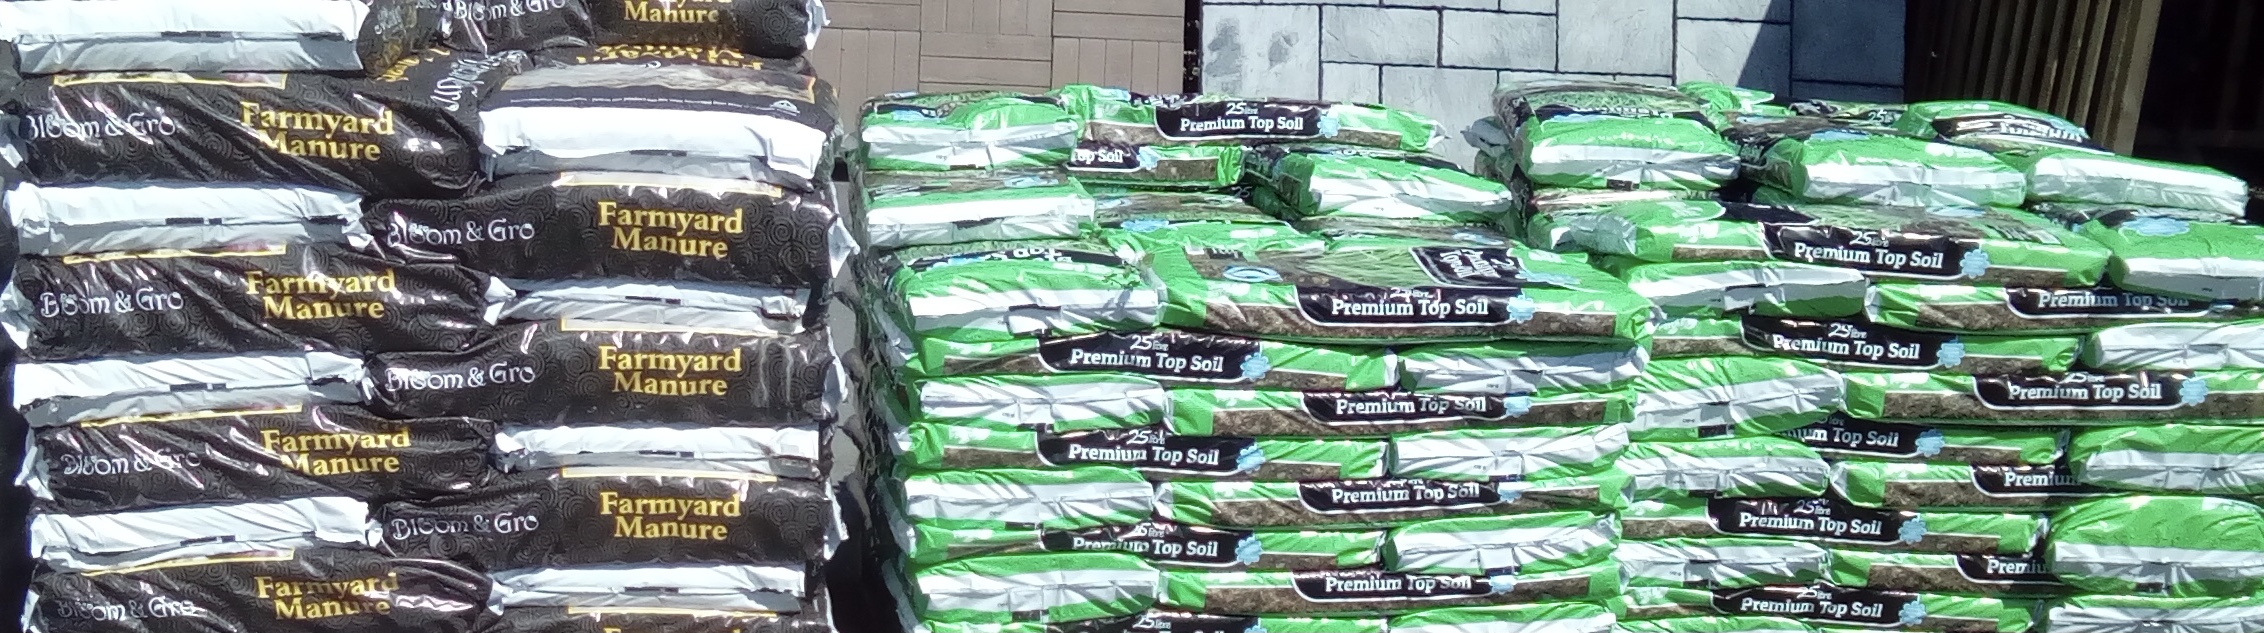 Bags of compost in piles